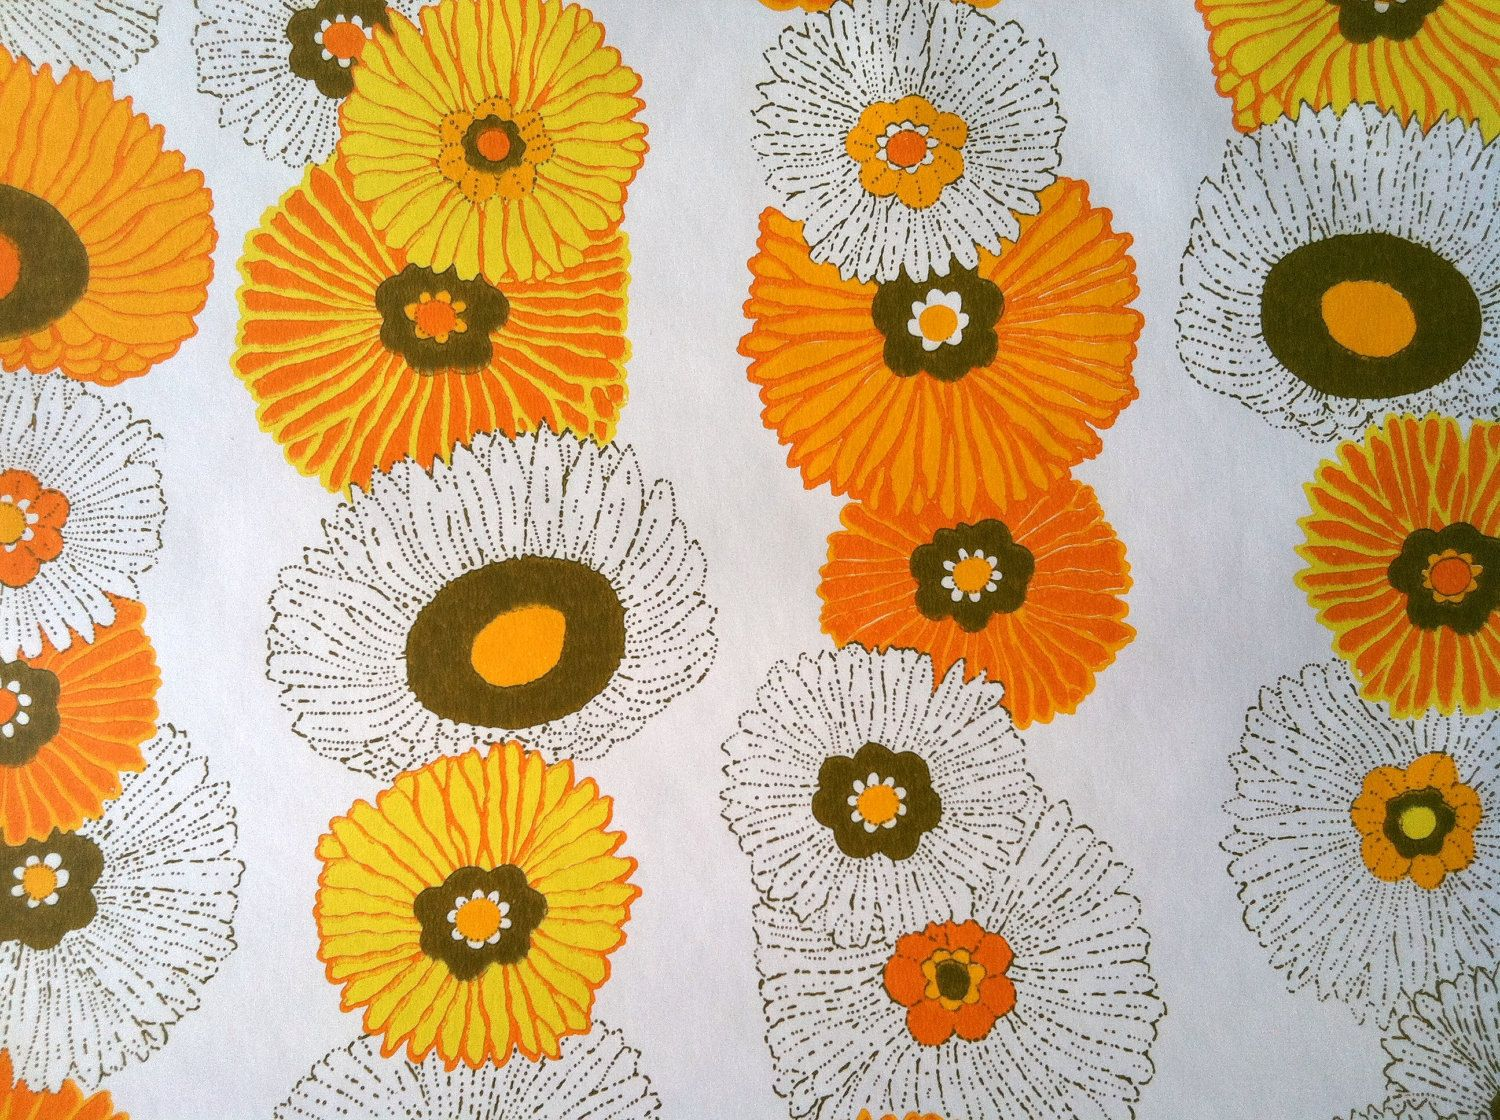 pics for 1970s wallpaper patterns